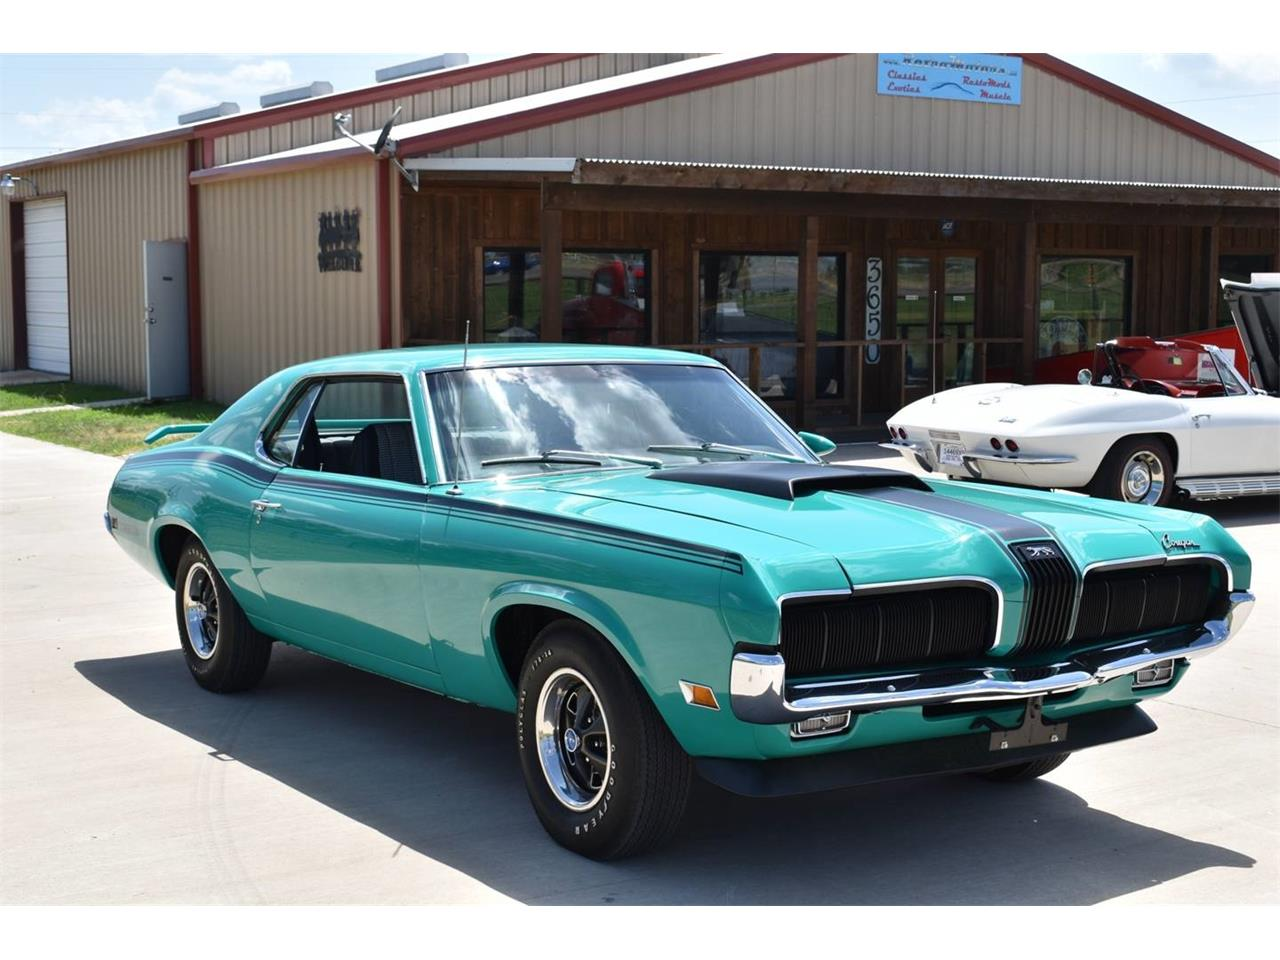 Large Picture of 1970 Mercury Cougar located in Texas Auction Vehicle - OI1E